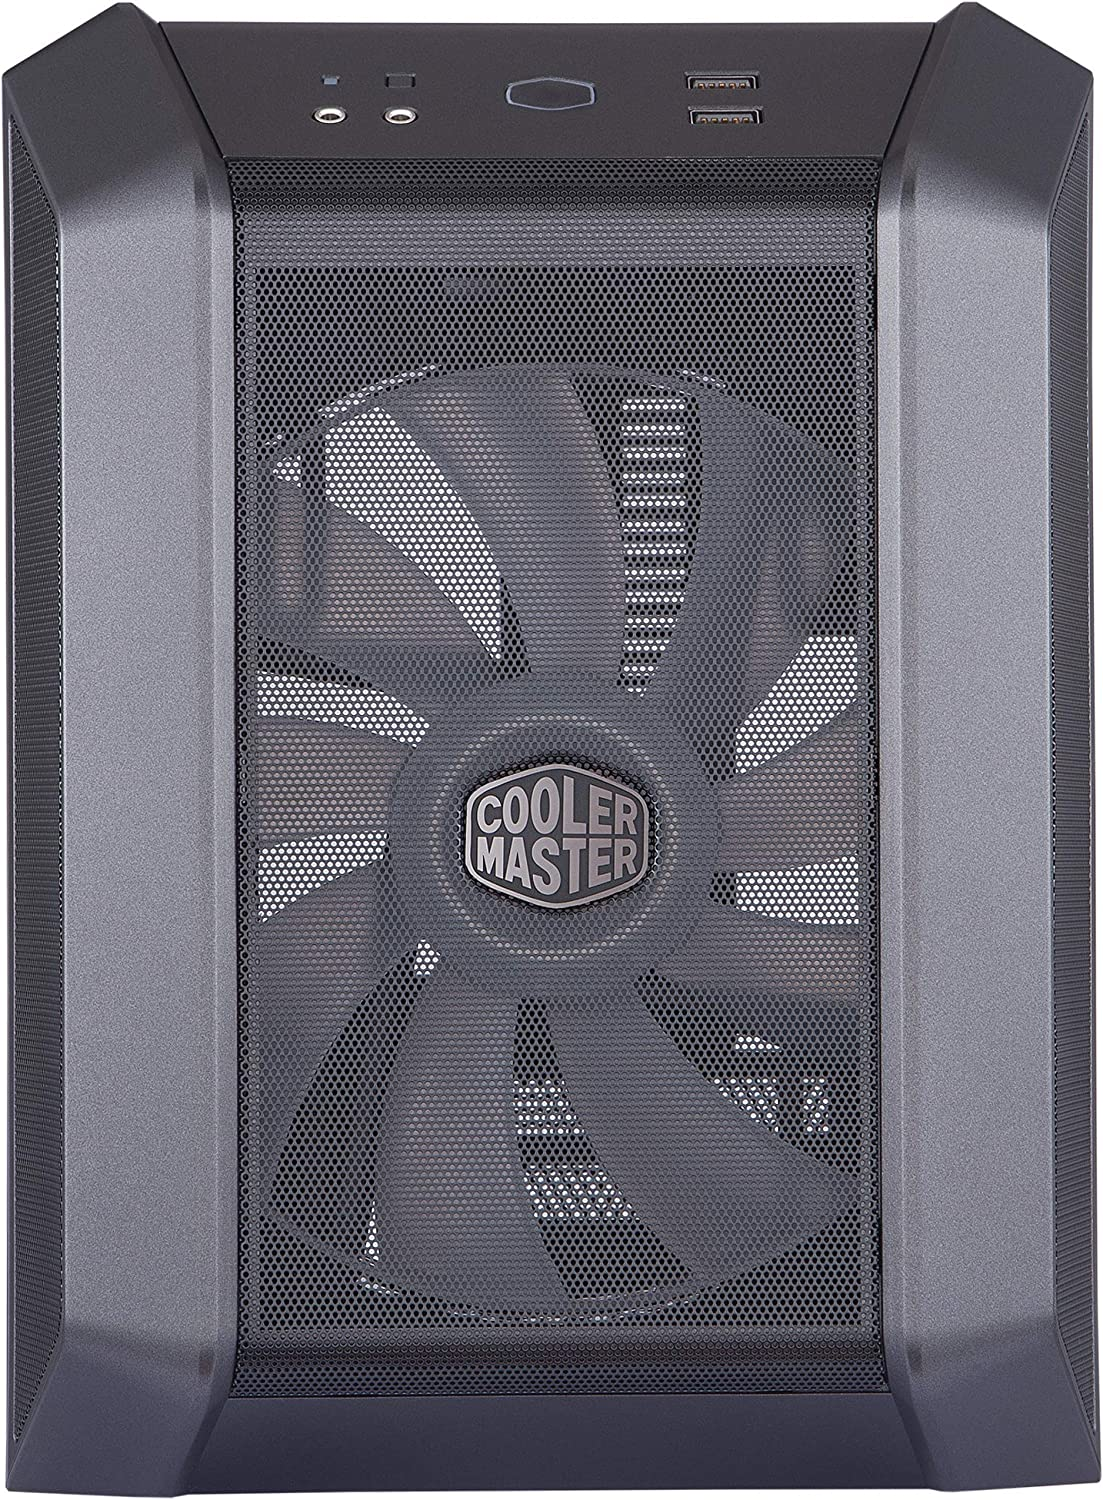 Fine Mesh Front Panel Built-in Handle /& RGB Lighting Control Cooler Master MasterCase H100 Mini-ITX PC Case with 200mm RGB Fan